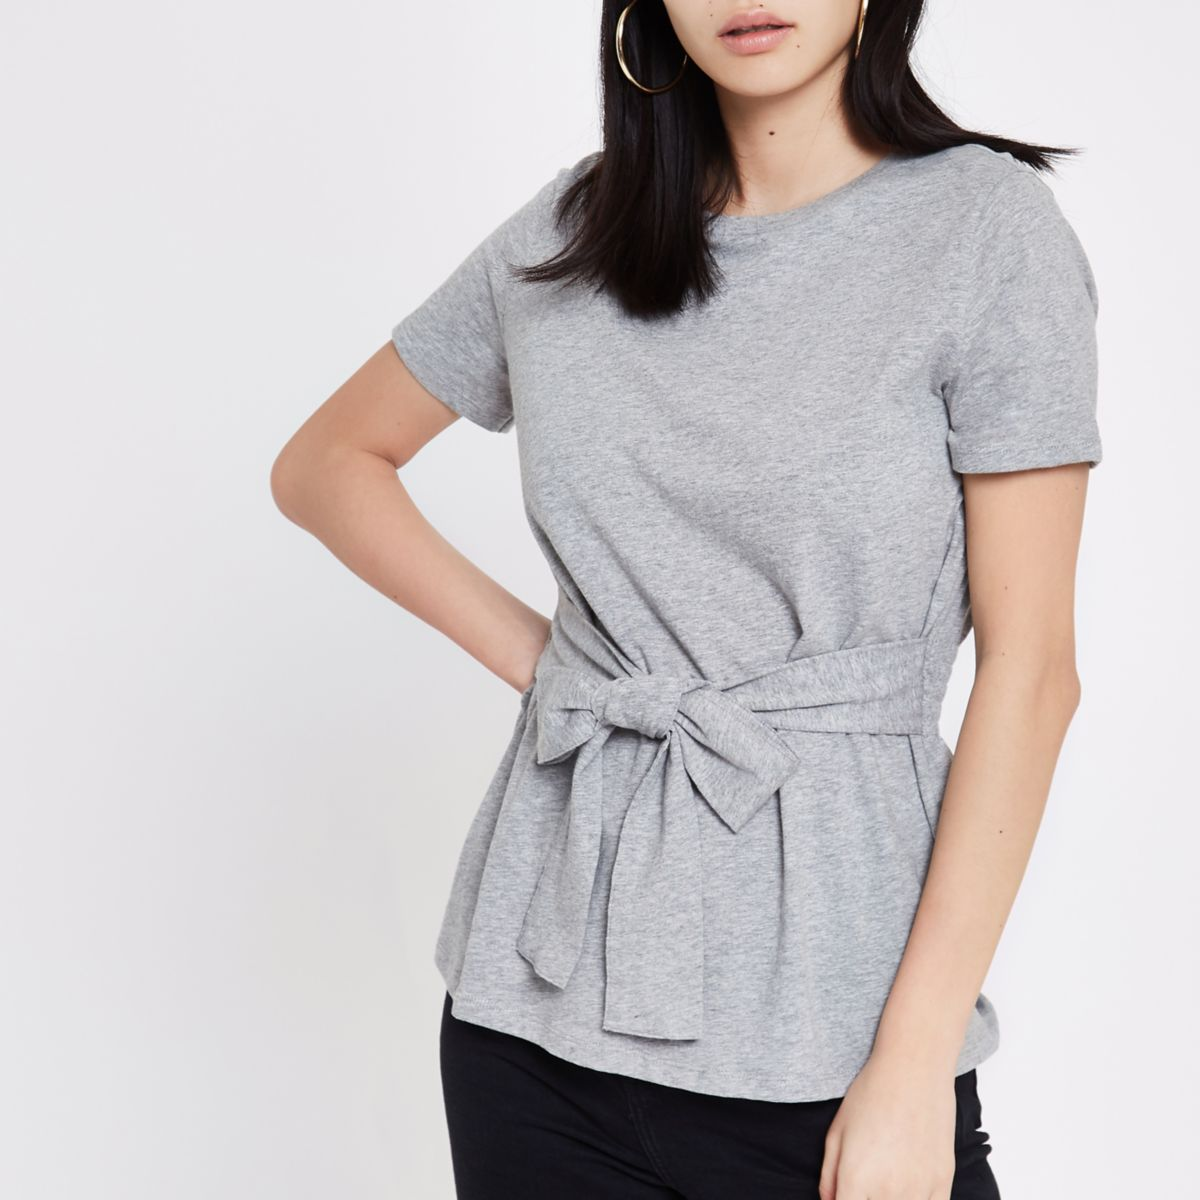 Grey Fitted Tie Front T Shirt                                  Grey Fitted Tie Front T Shirt by River Island